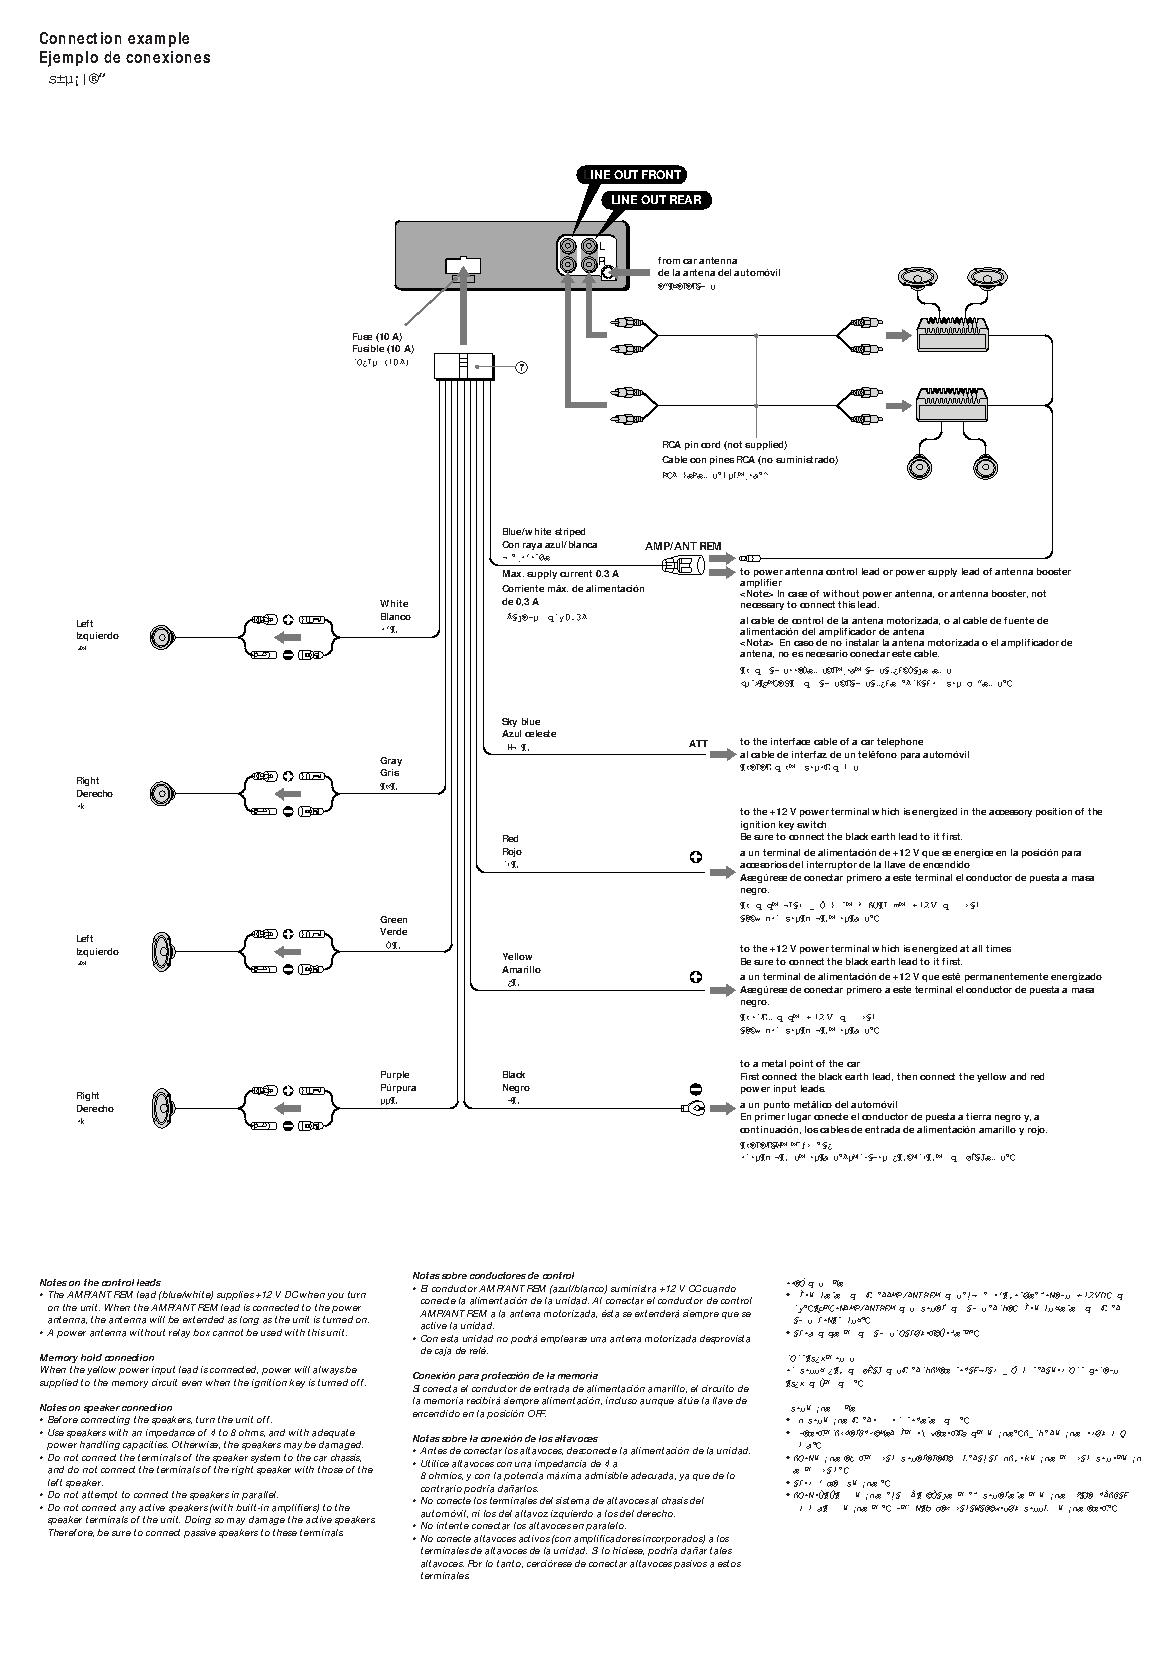 Sony Cdx Gt330 Wiring Diagram Fresh Sony Cdx L550X Wiring Diagram - Sony Cdx Gt565Up Wiring Diagram